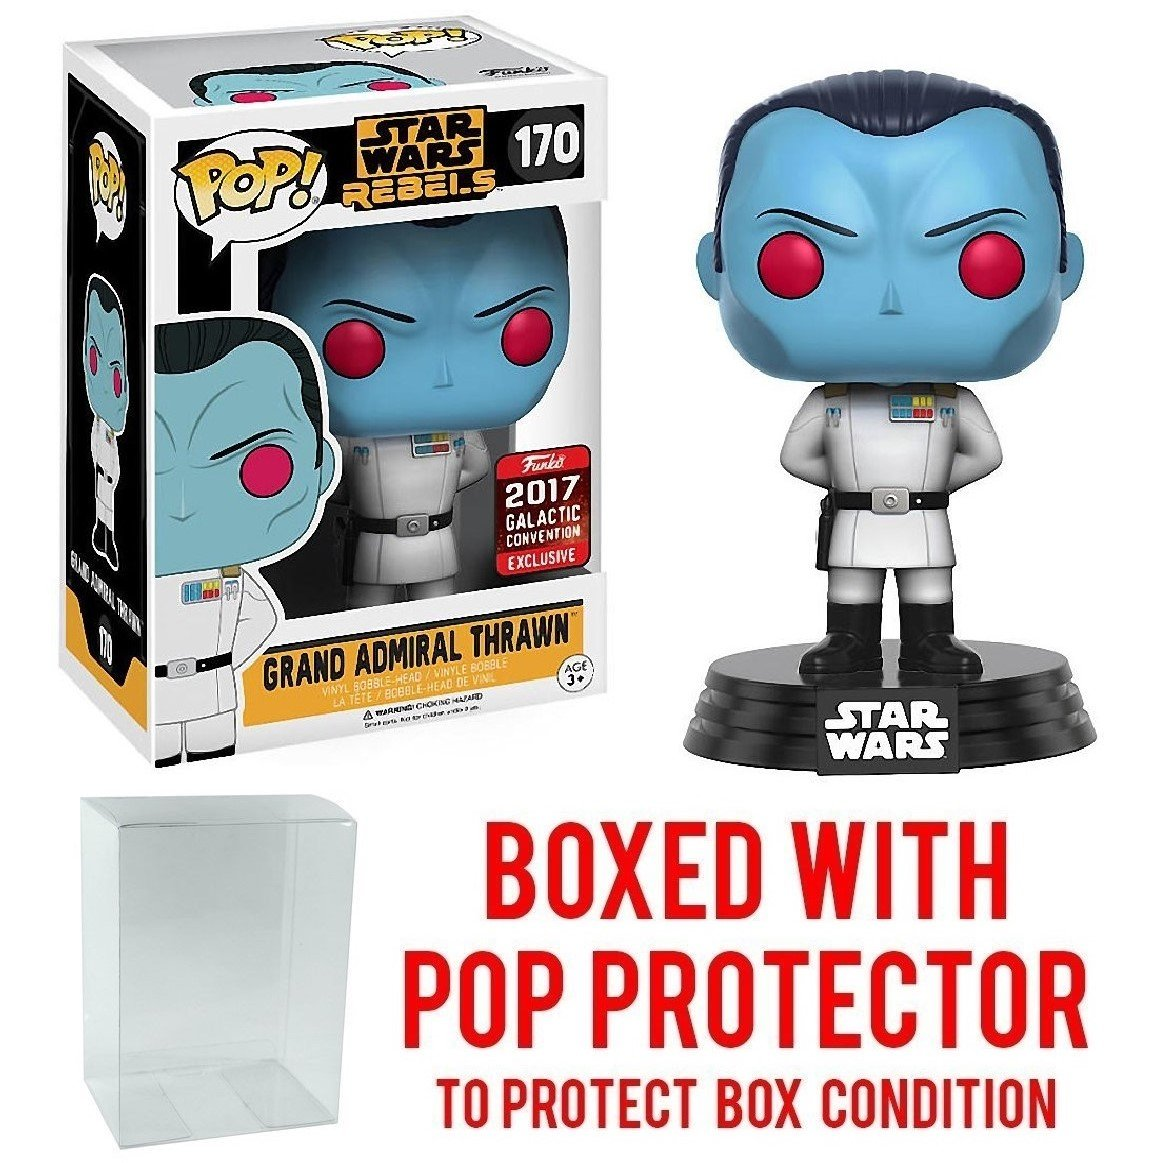 Funko Pop! Star Wars - Grand Admiral Thrawn 2017 Star Wars Galactic Convention Exclusive Vinyl Figure (Bundled with Pop BOX PROTECTOR CASE)